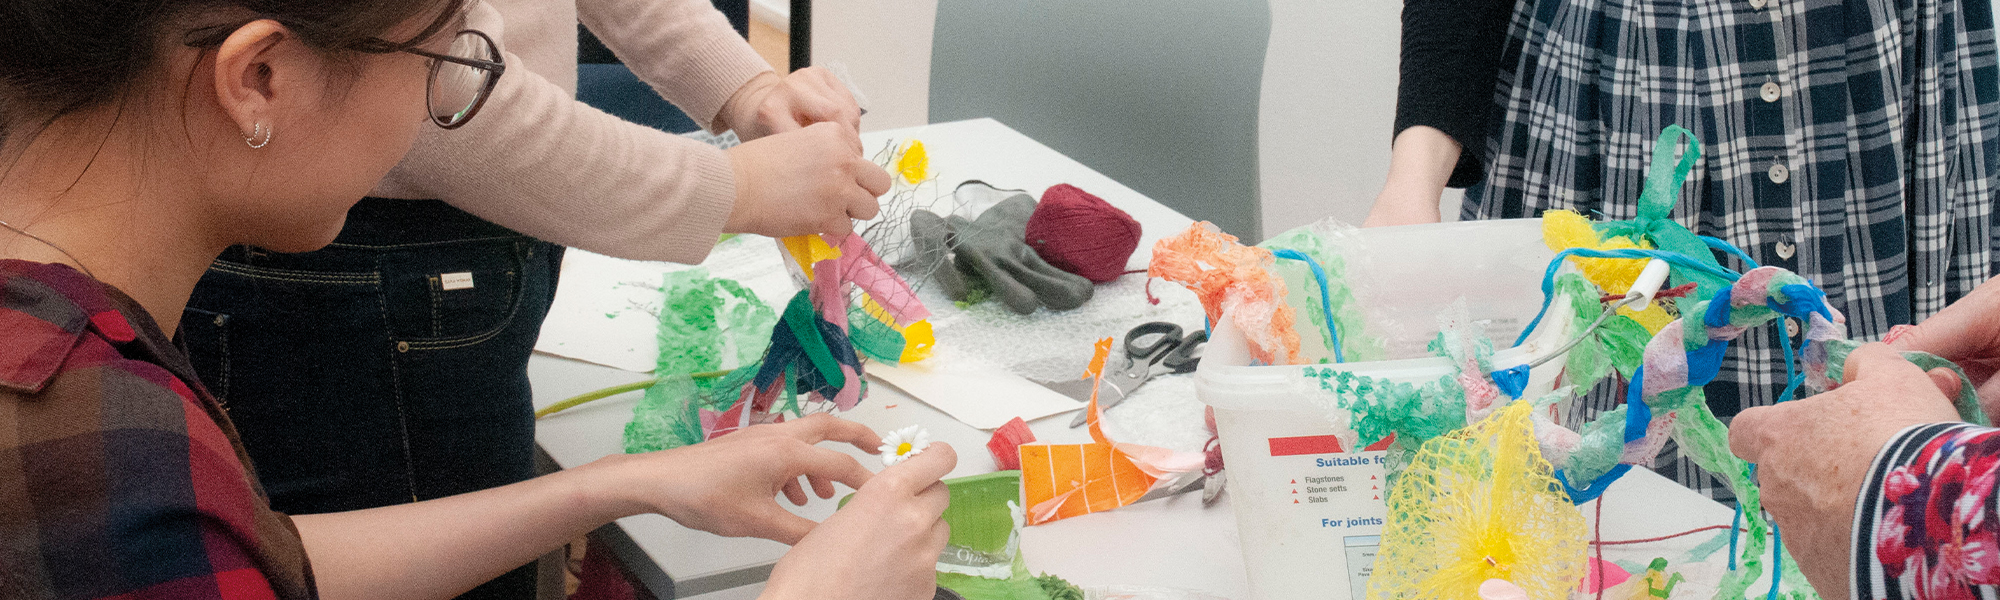 Students making arts and crafts